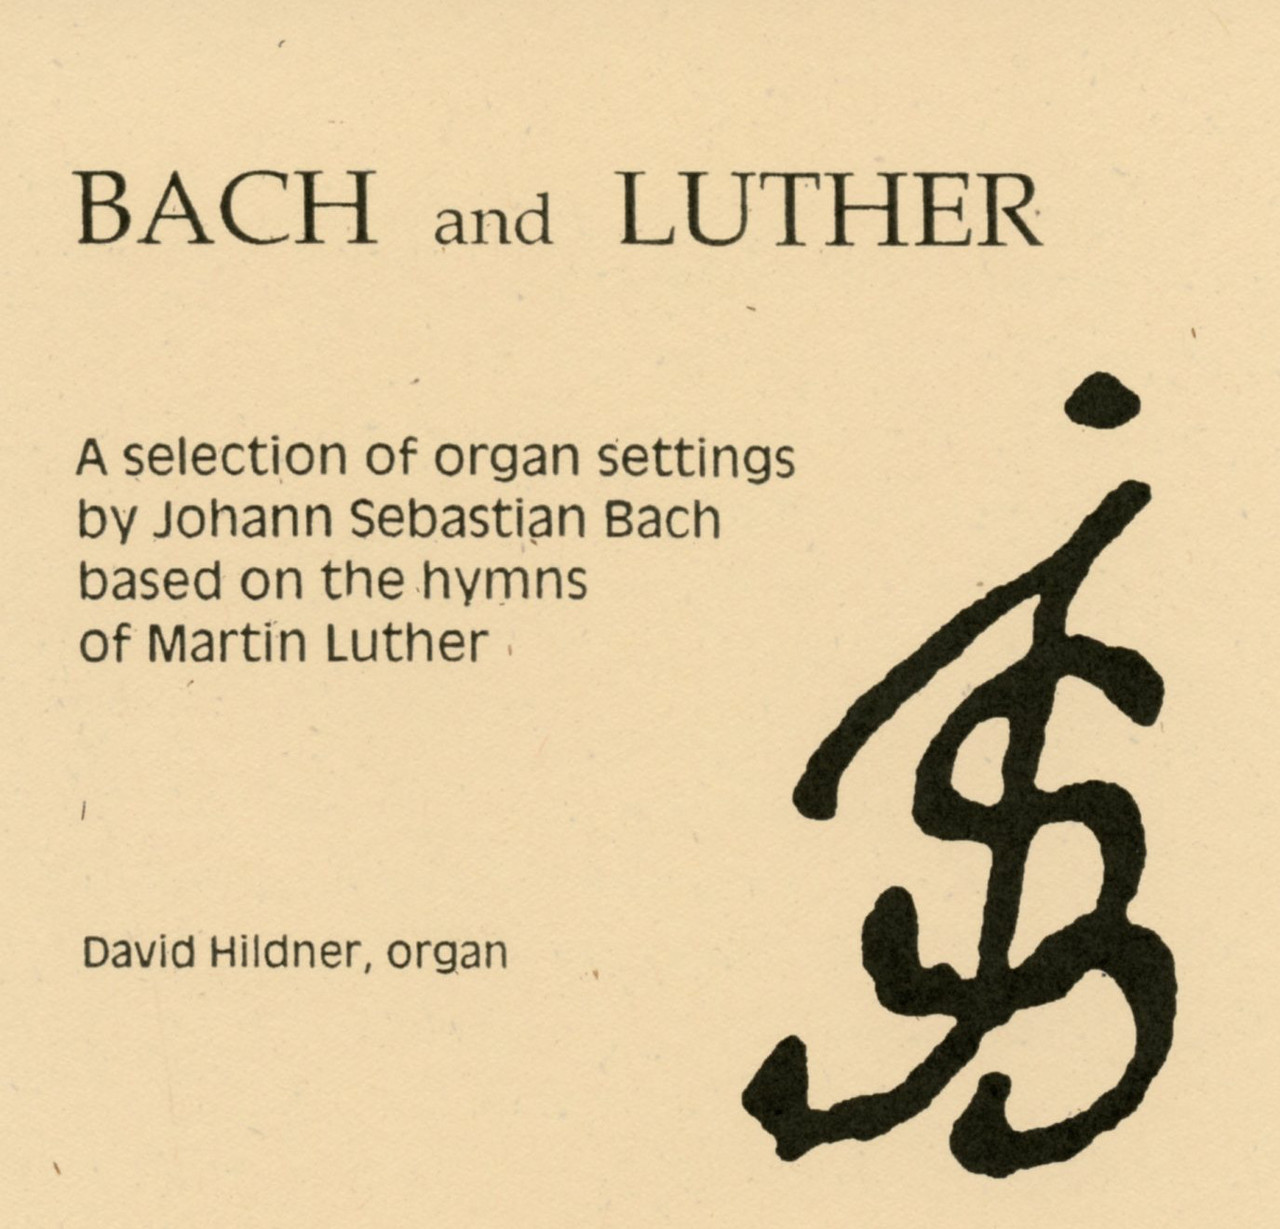 Bach and Luther